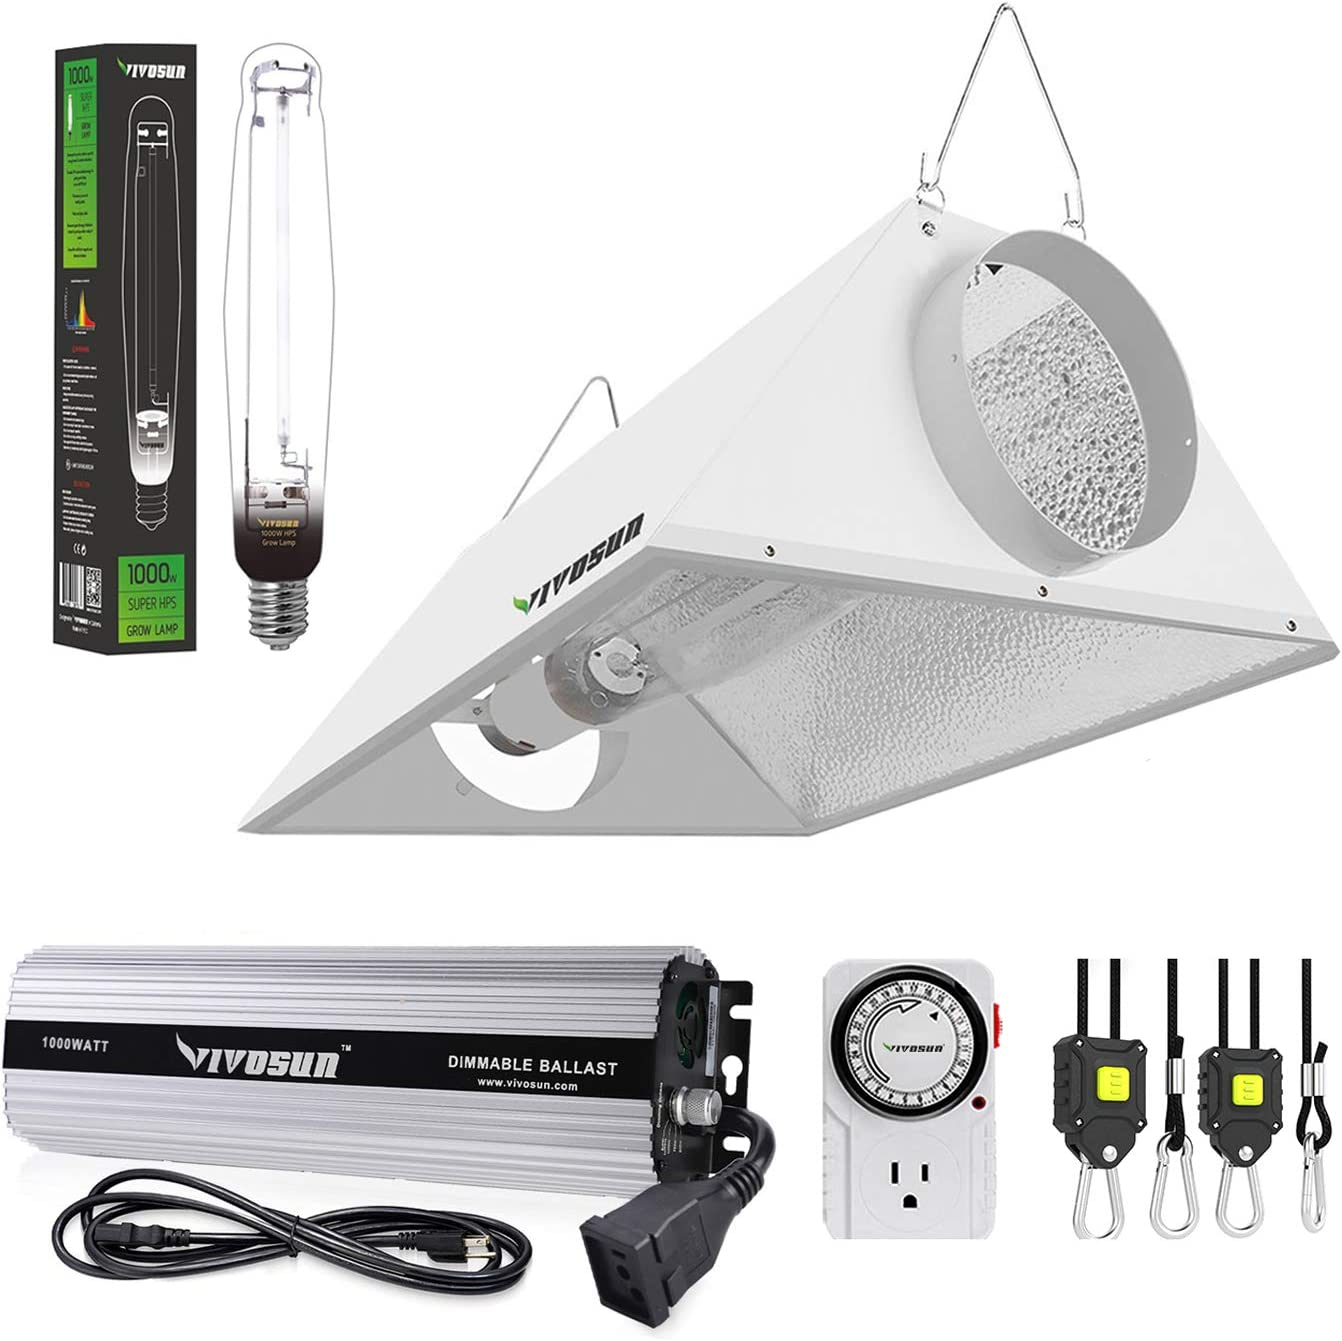 VIVOSUN Hydroponic 1000 Watt HPS Grow Light Air Cooled Reflector Kit - Easy to Set up, High Stability & Compatibility (Enhanced Version)